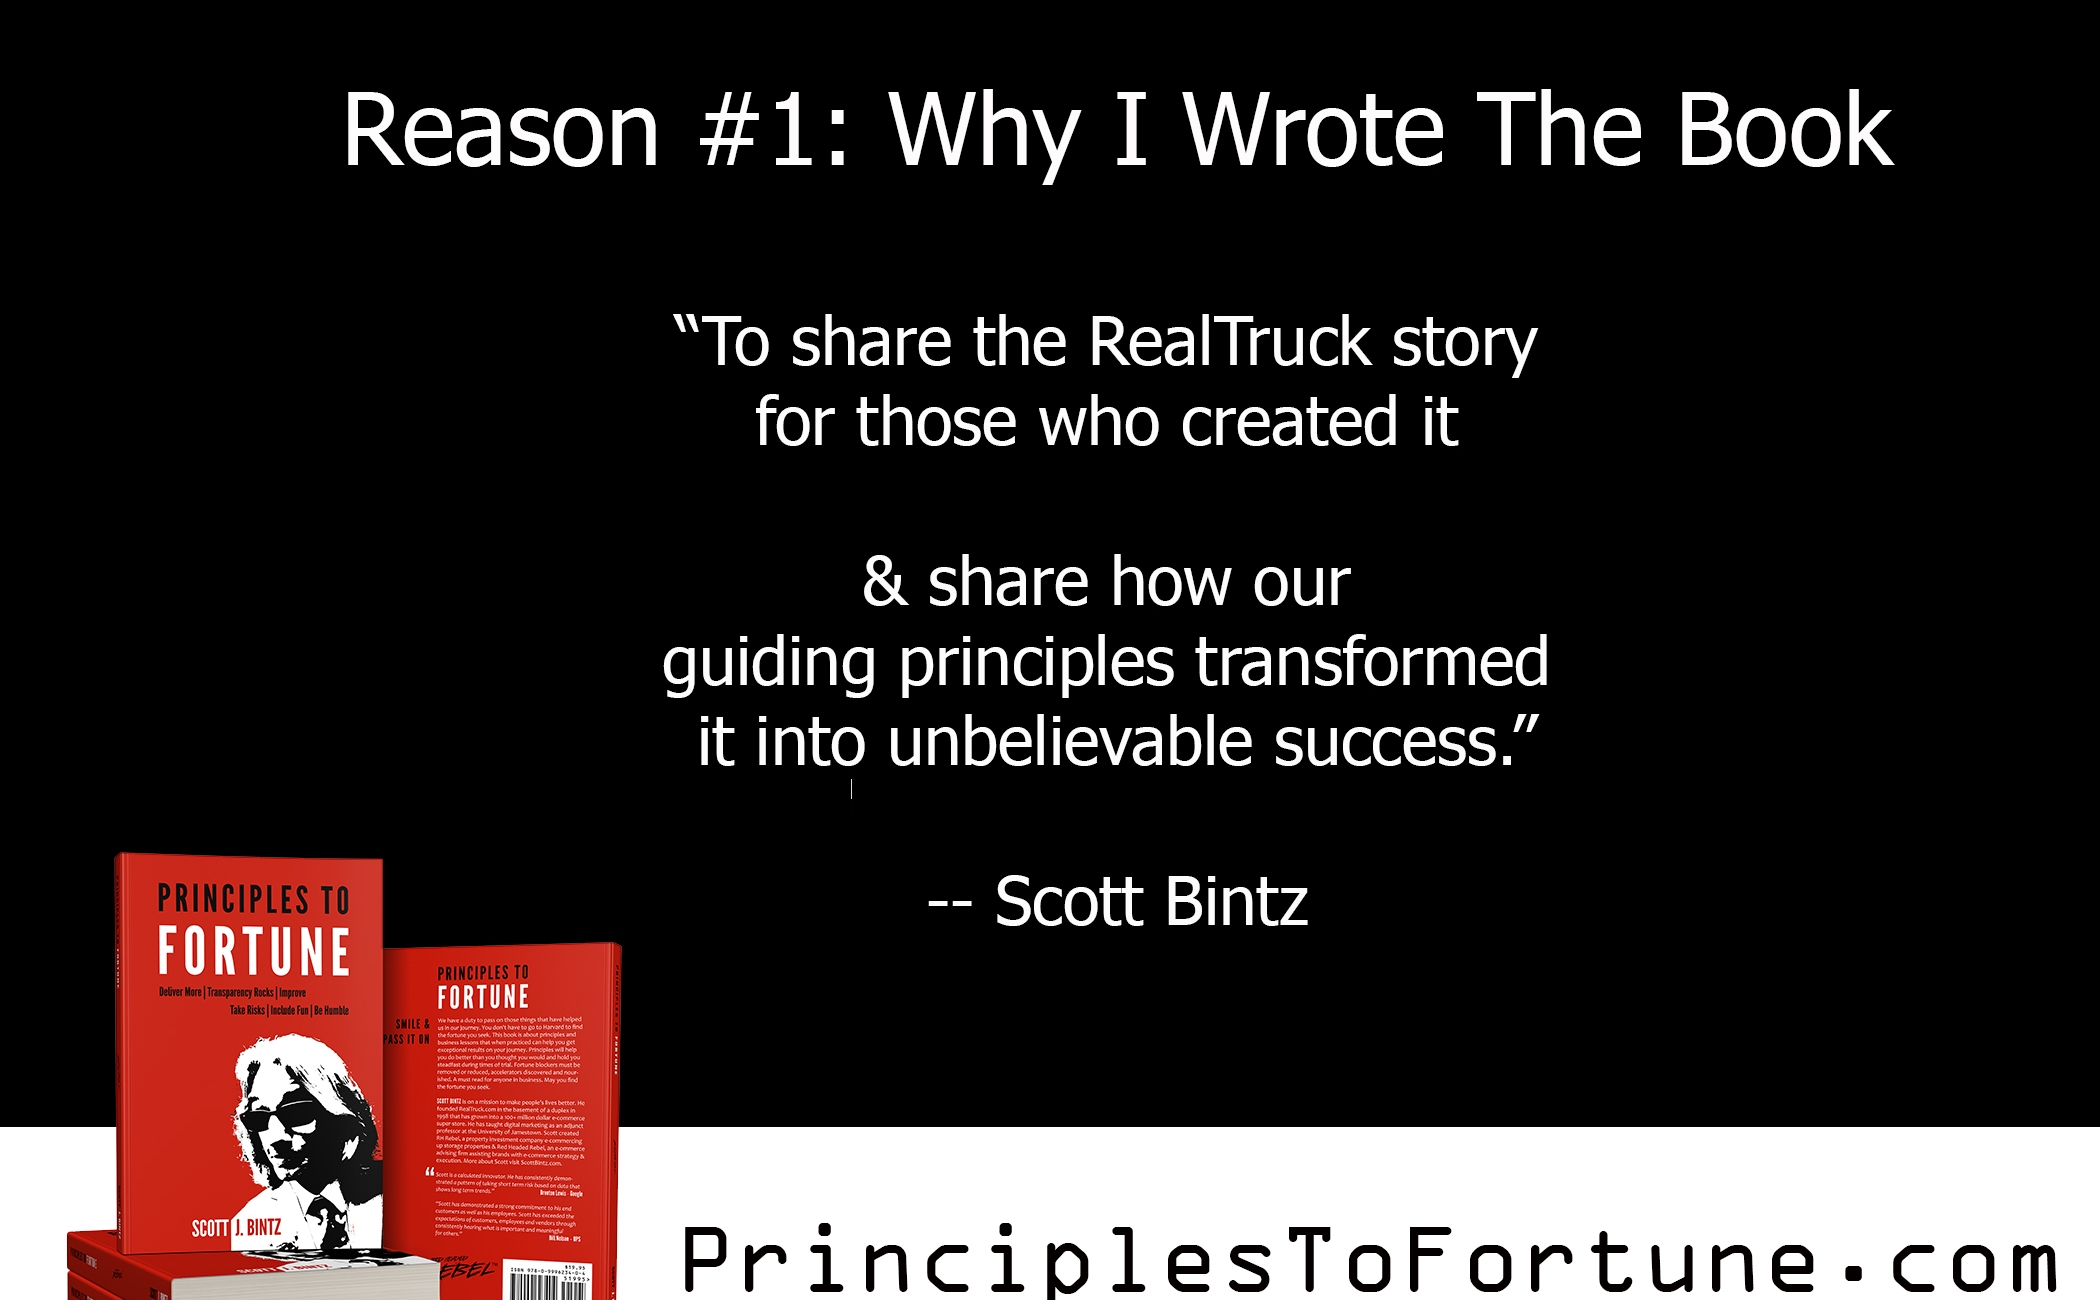 Reason 1: Why I Wrote The Book Principles To Fortune